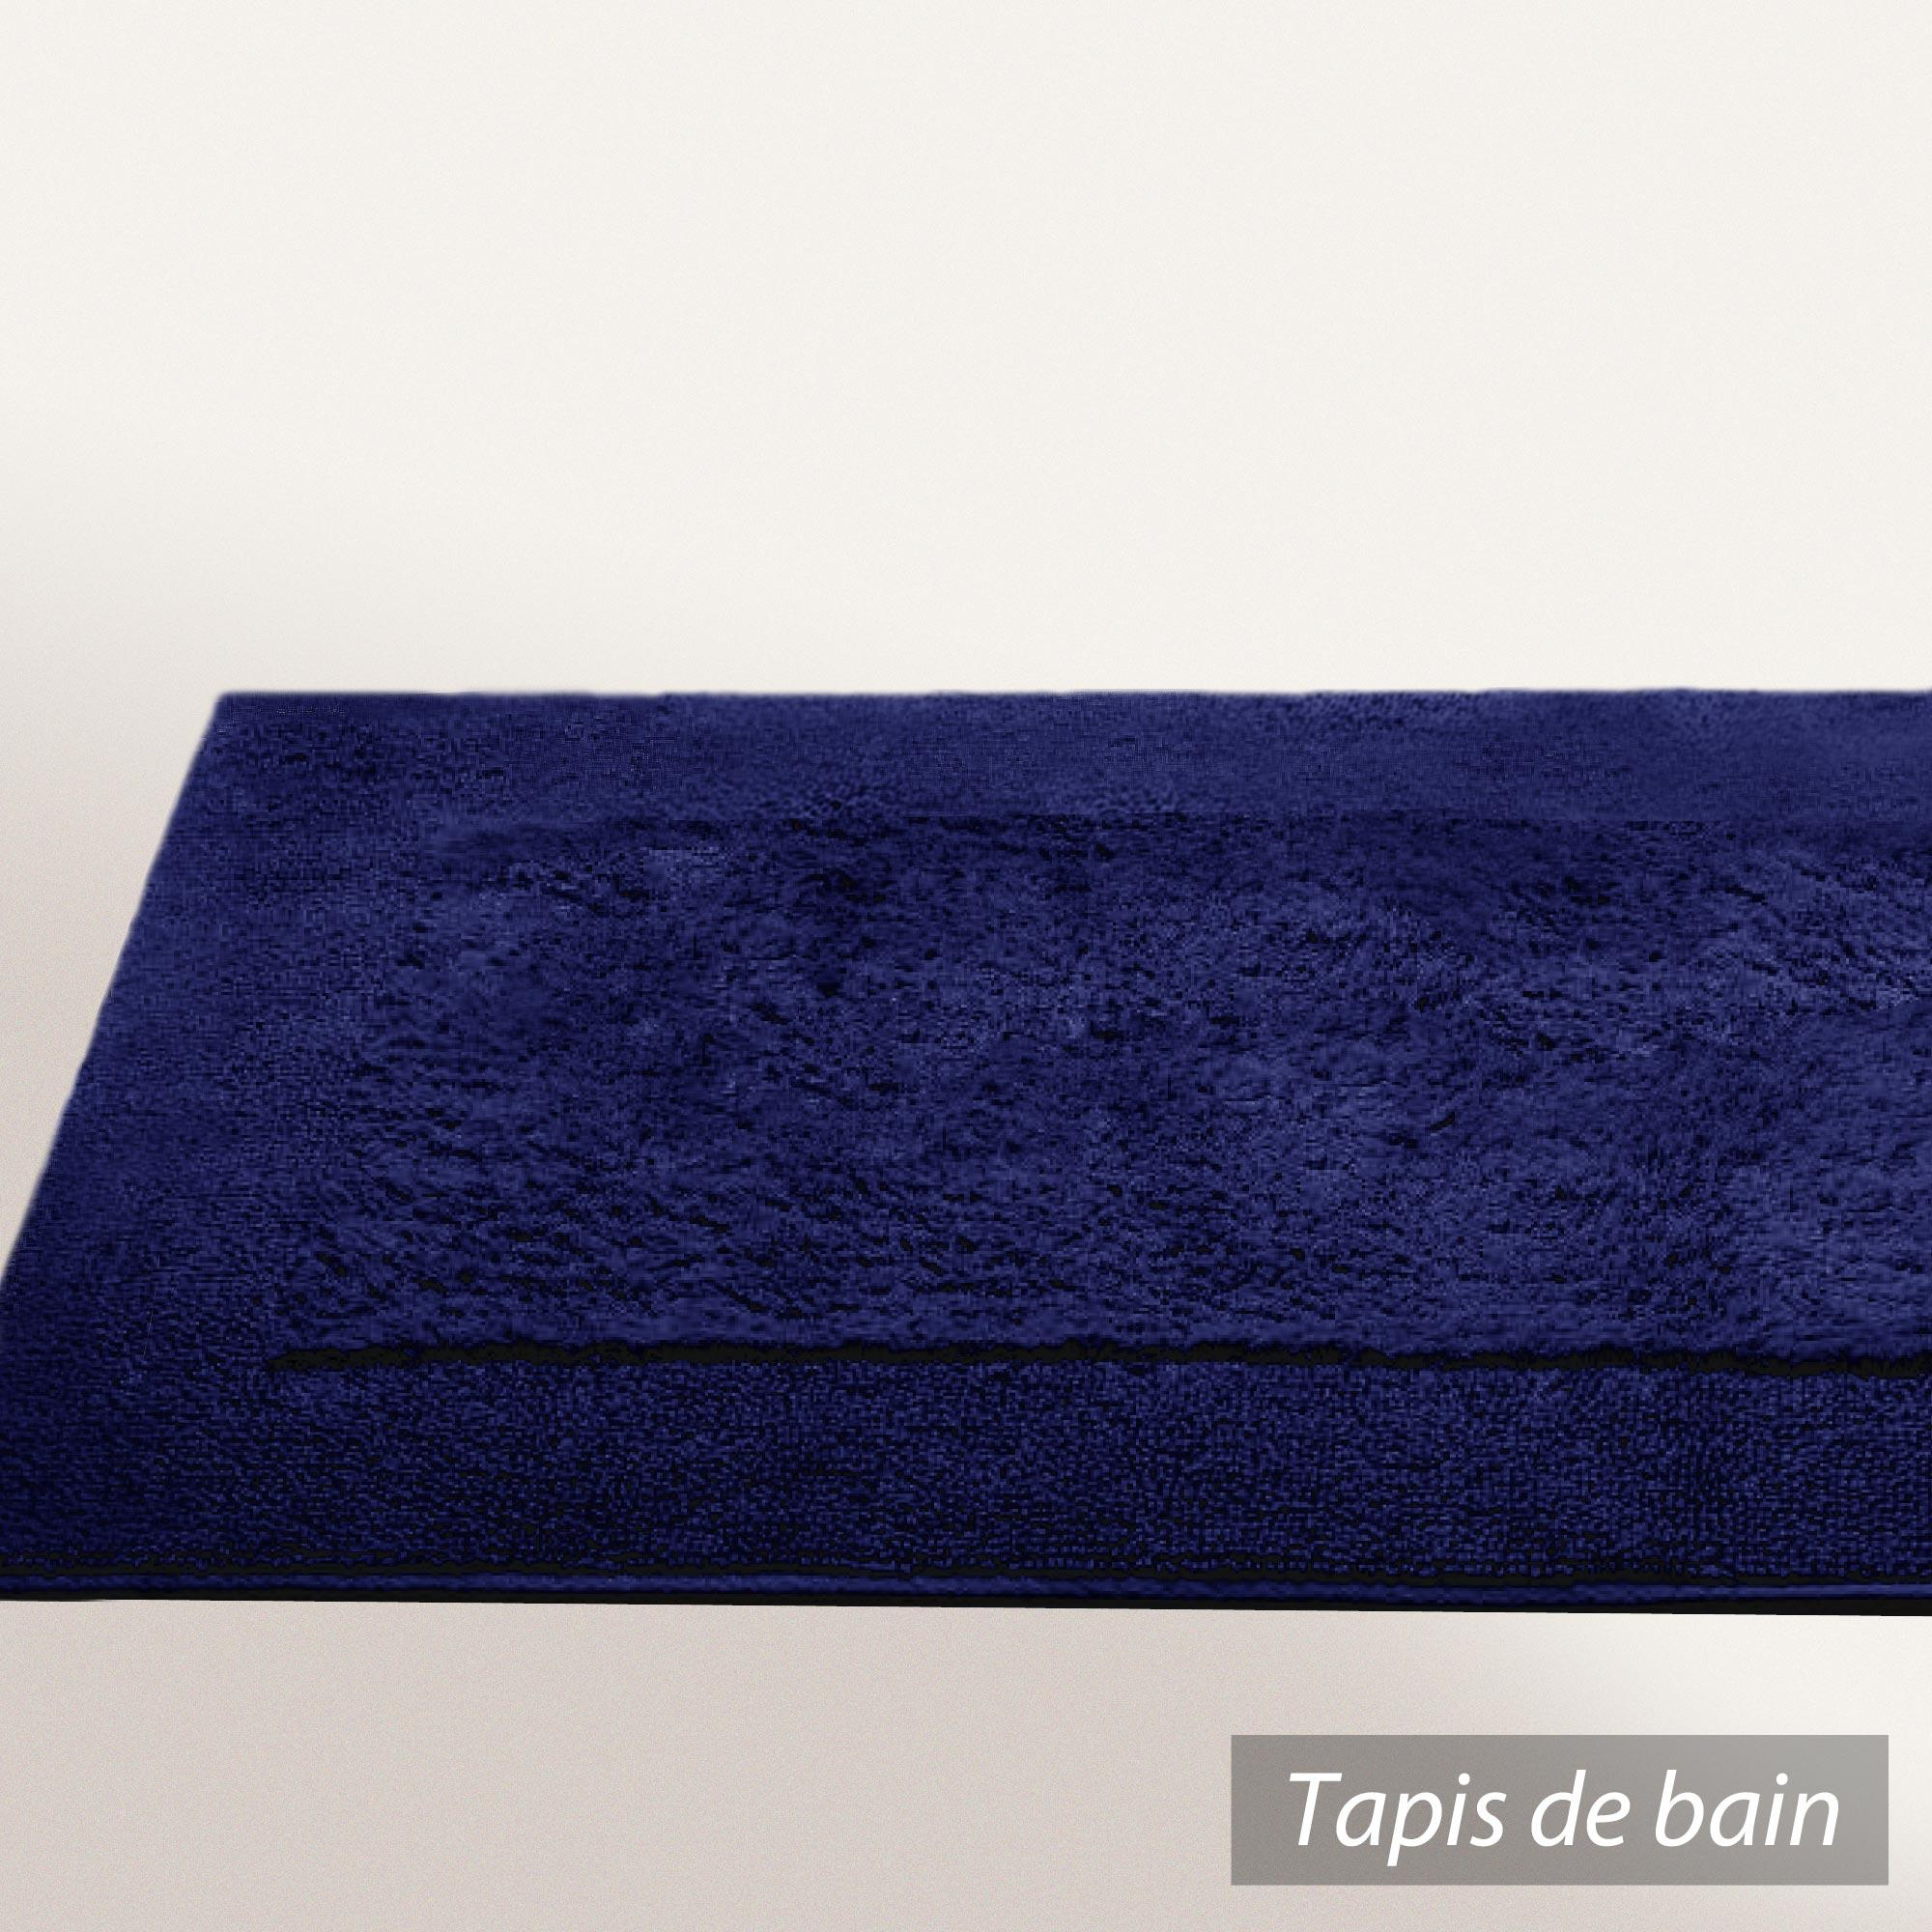 tapis de bain 70x120cm coton uni dream bleu marine. Black Bedroom Furniture Sets. Home Design Ideas